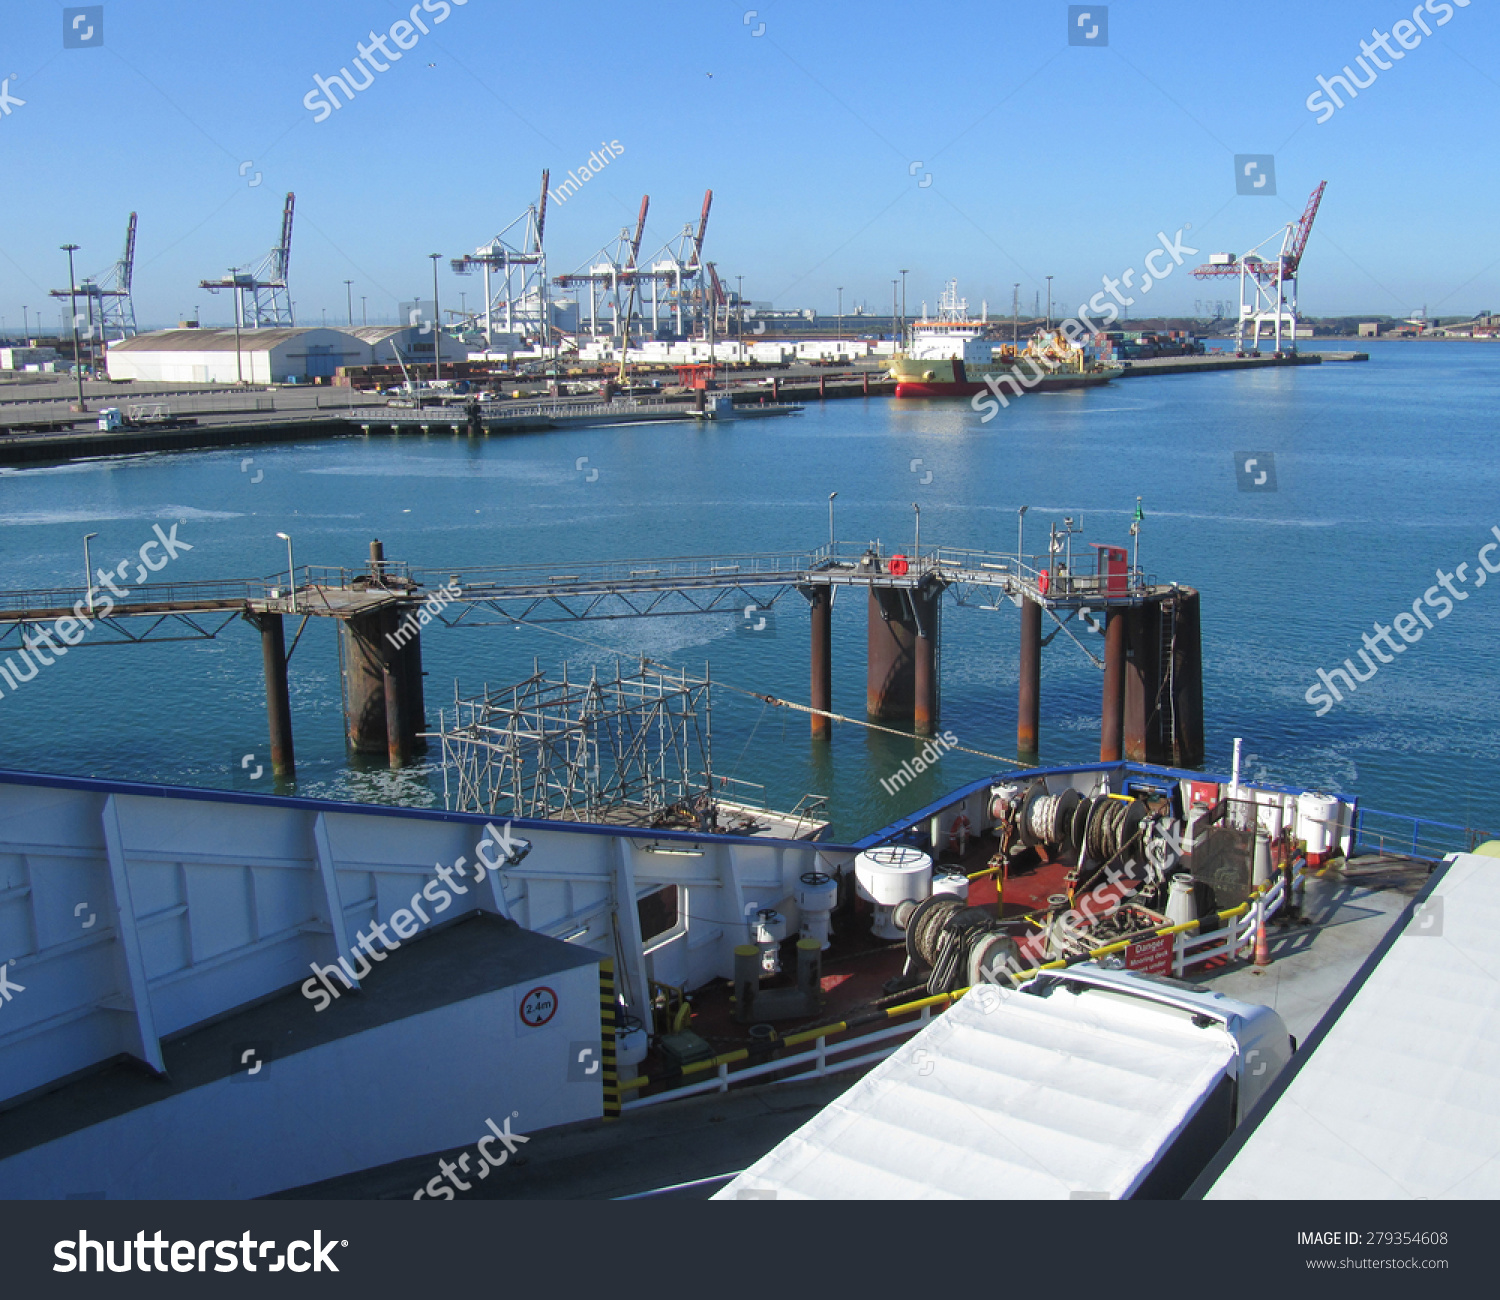 Dunkerque france may 13 2015 view of the ferry port in dunkerque the port connects to dover - Dunkirk port france address ...